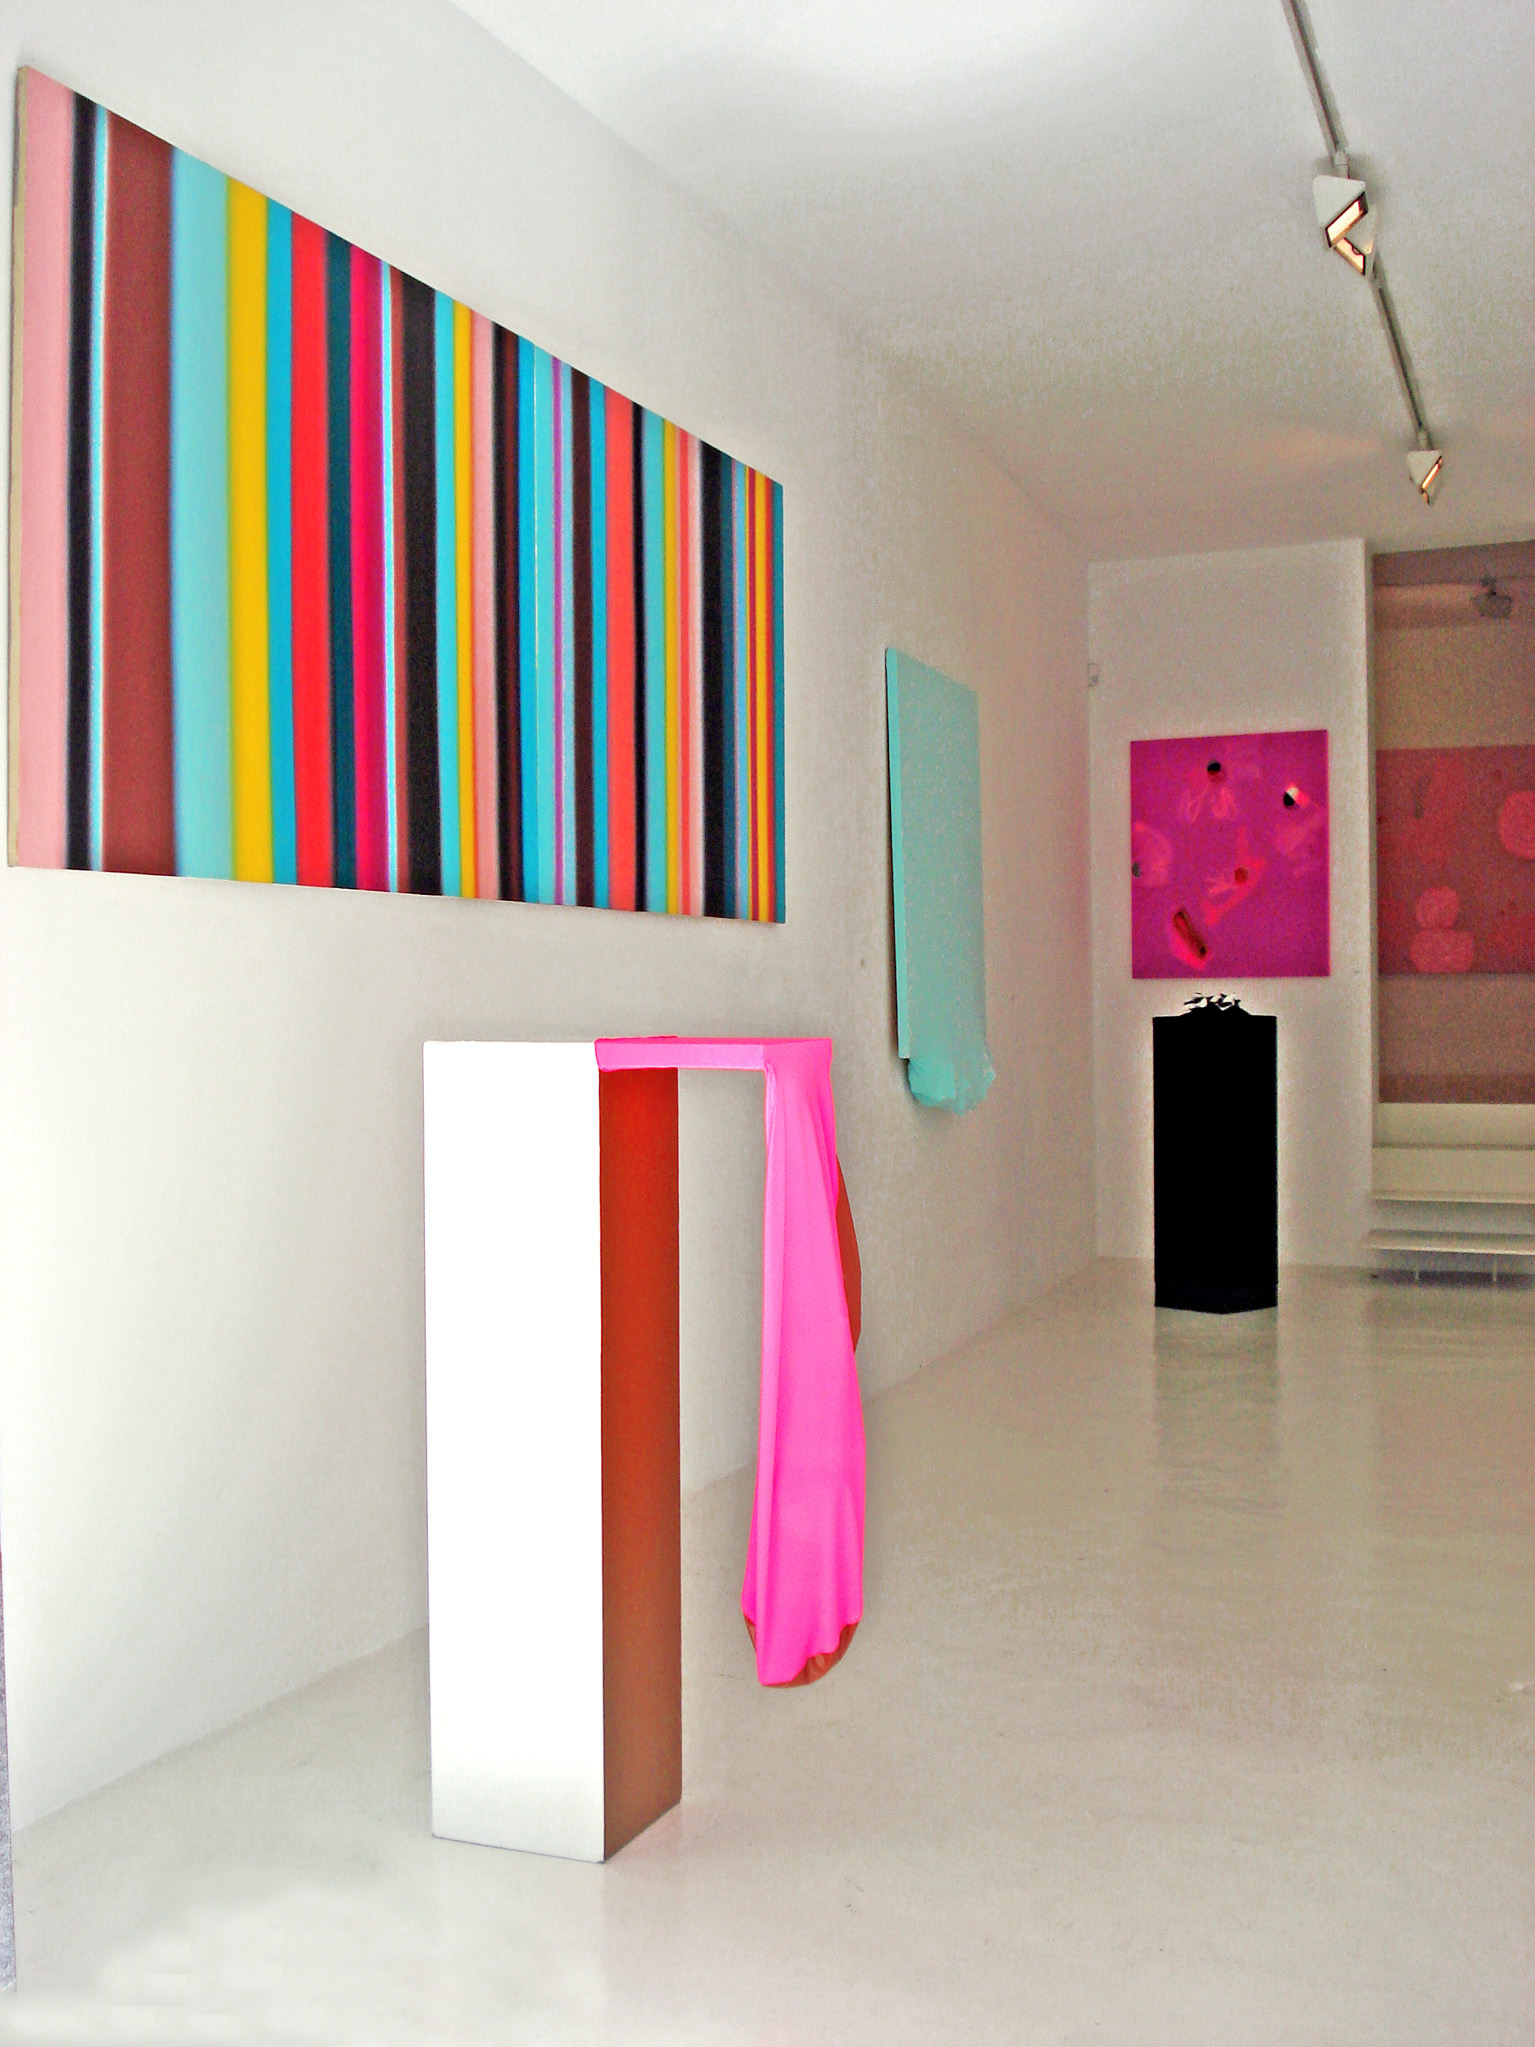 Exhibition view from Victoria Encinas, 2009